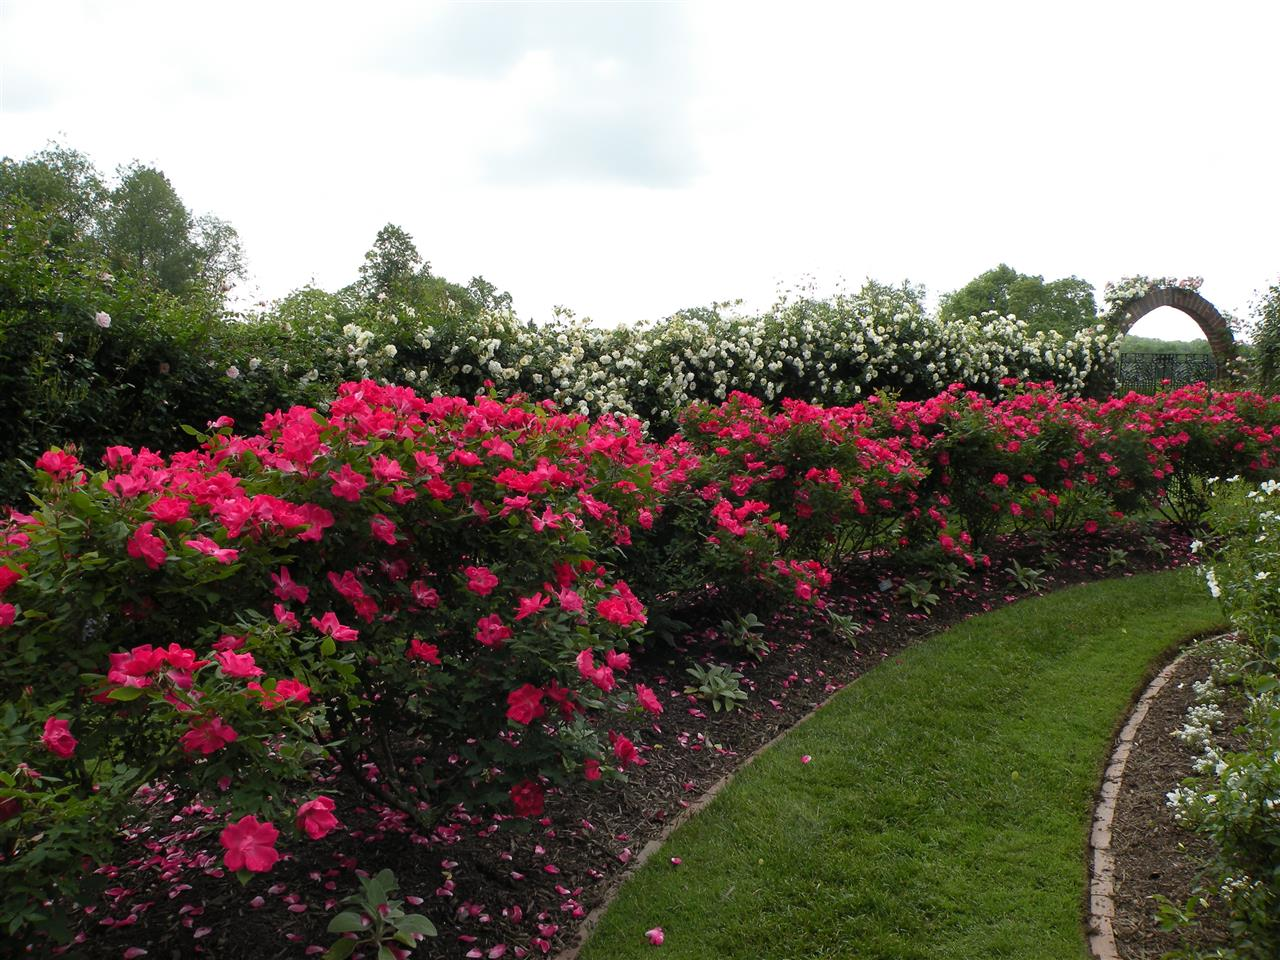 Rose Wall at Ladew Topiary Garden, Monkton, MD